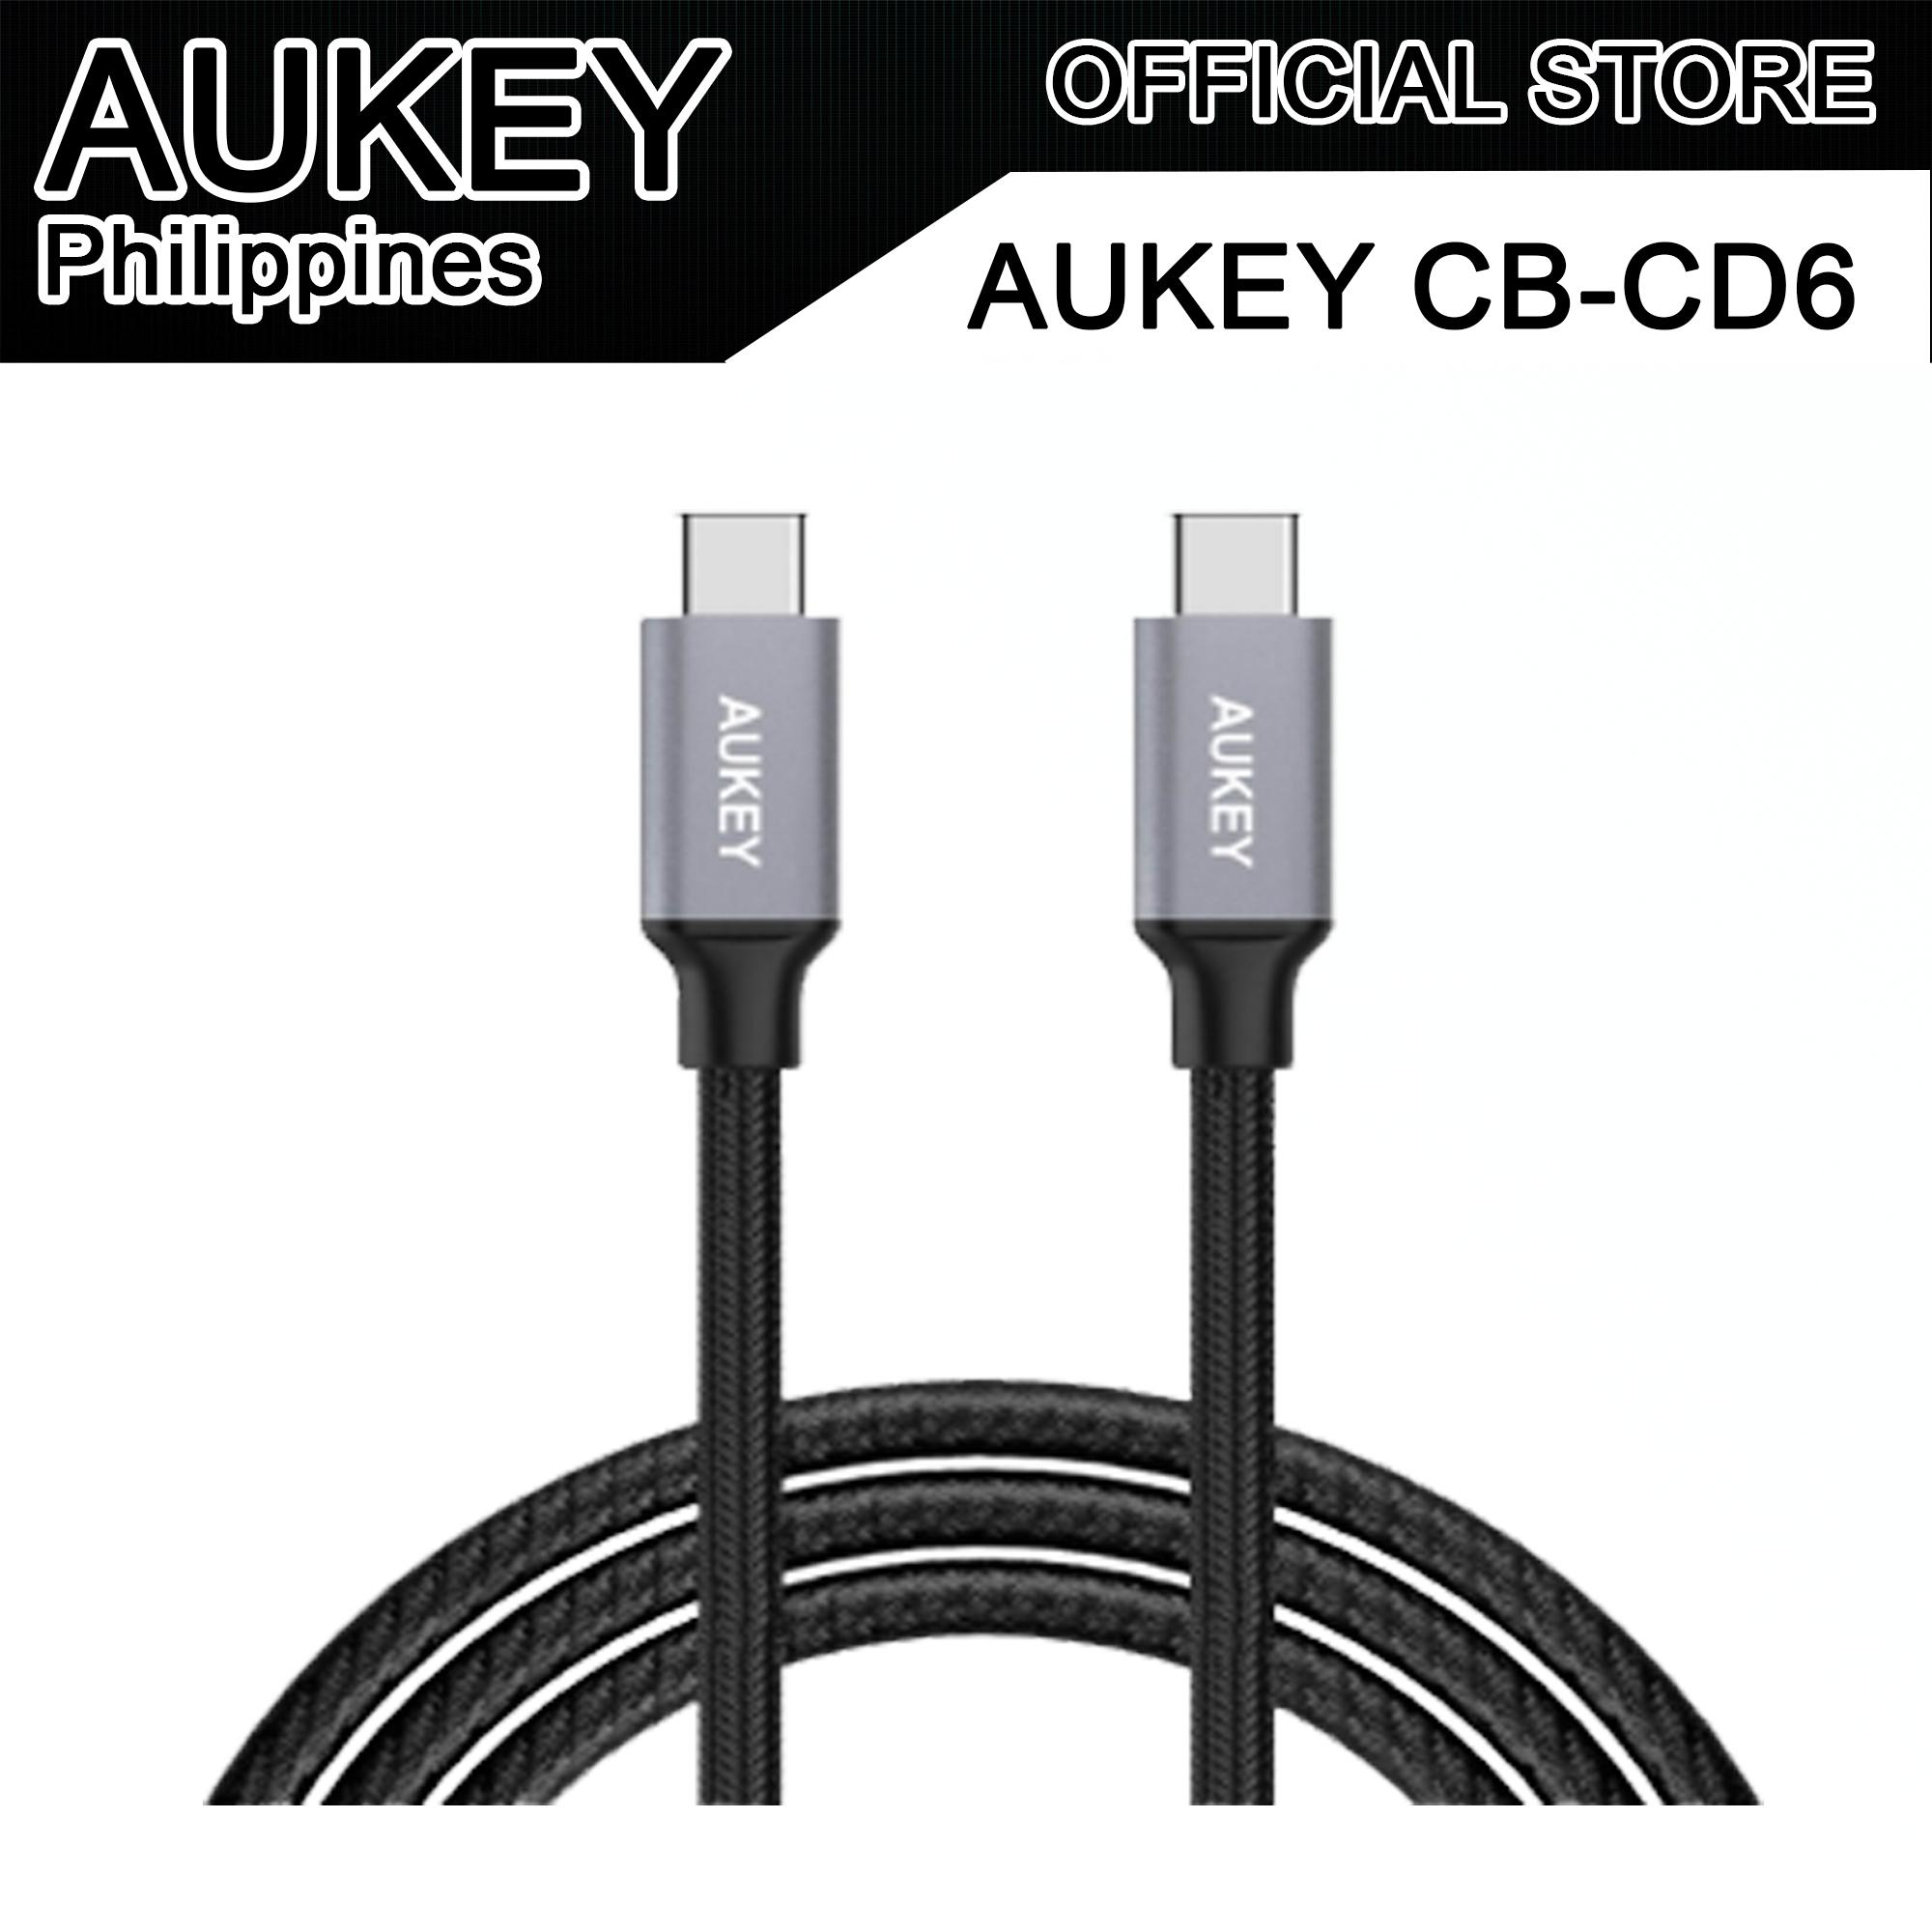 Buy Sell Cheapest Aukey C Best Quality Product Deals Philippines Cb Cd5 Cable 1m Usb To Quick Charge 30 Braided Nylon Cd6 66ft